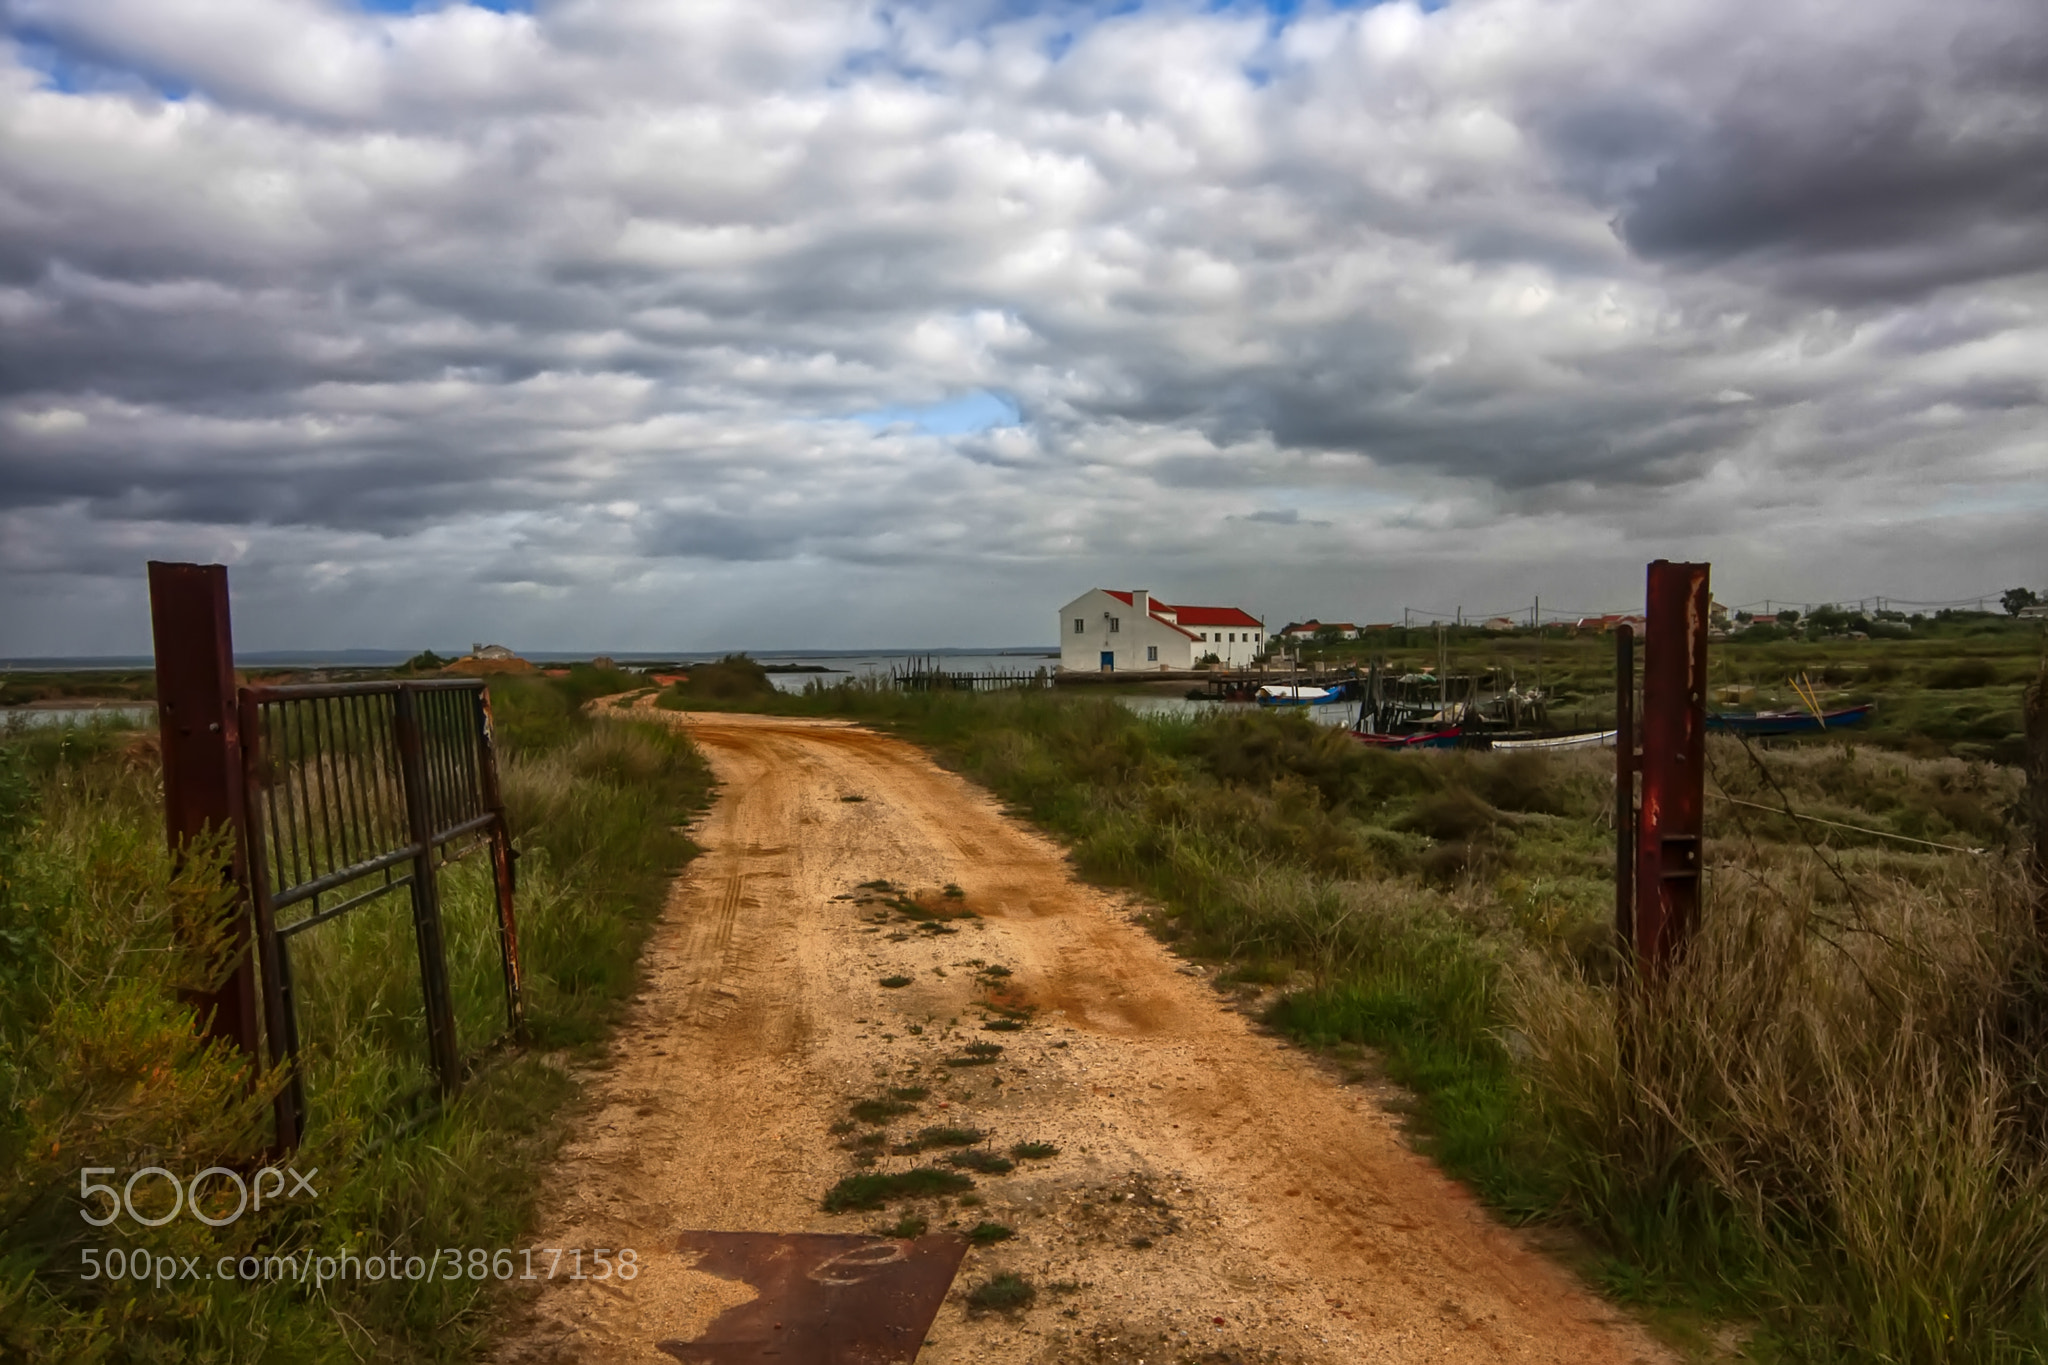 Photograph Open gates by Jorge Orfão on 500px